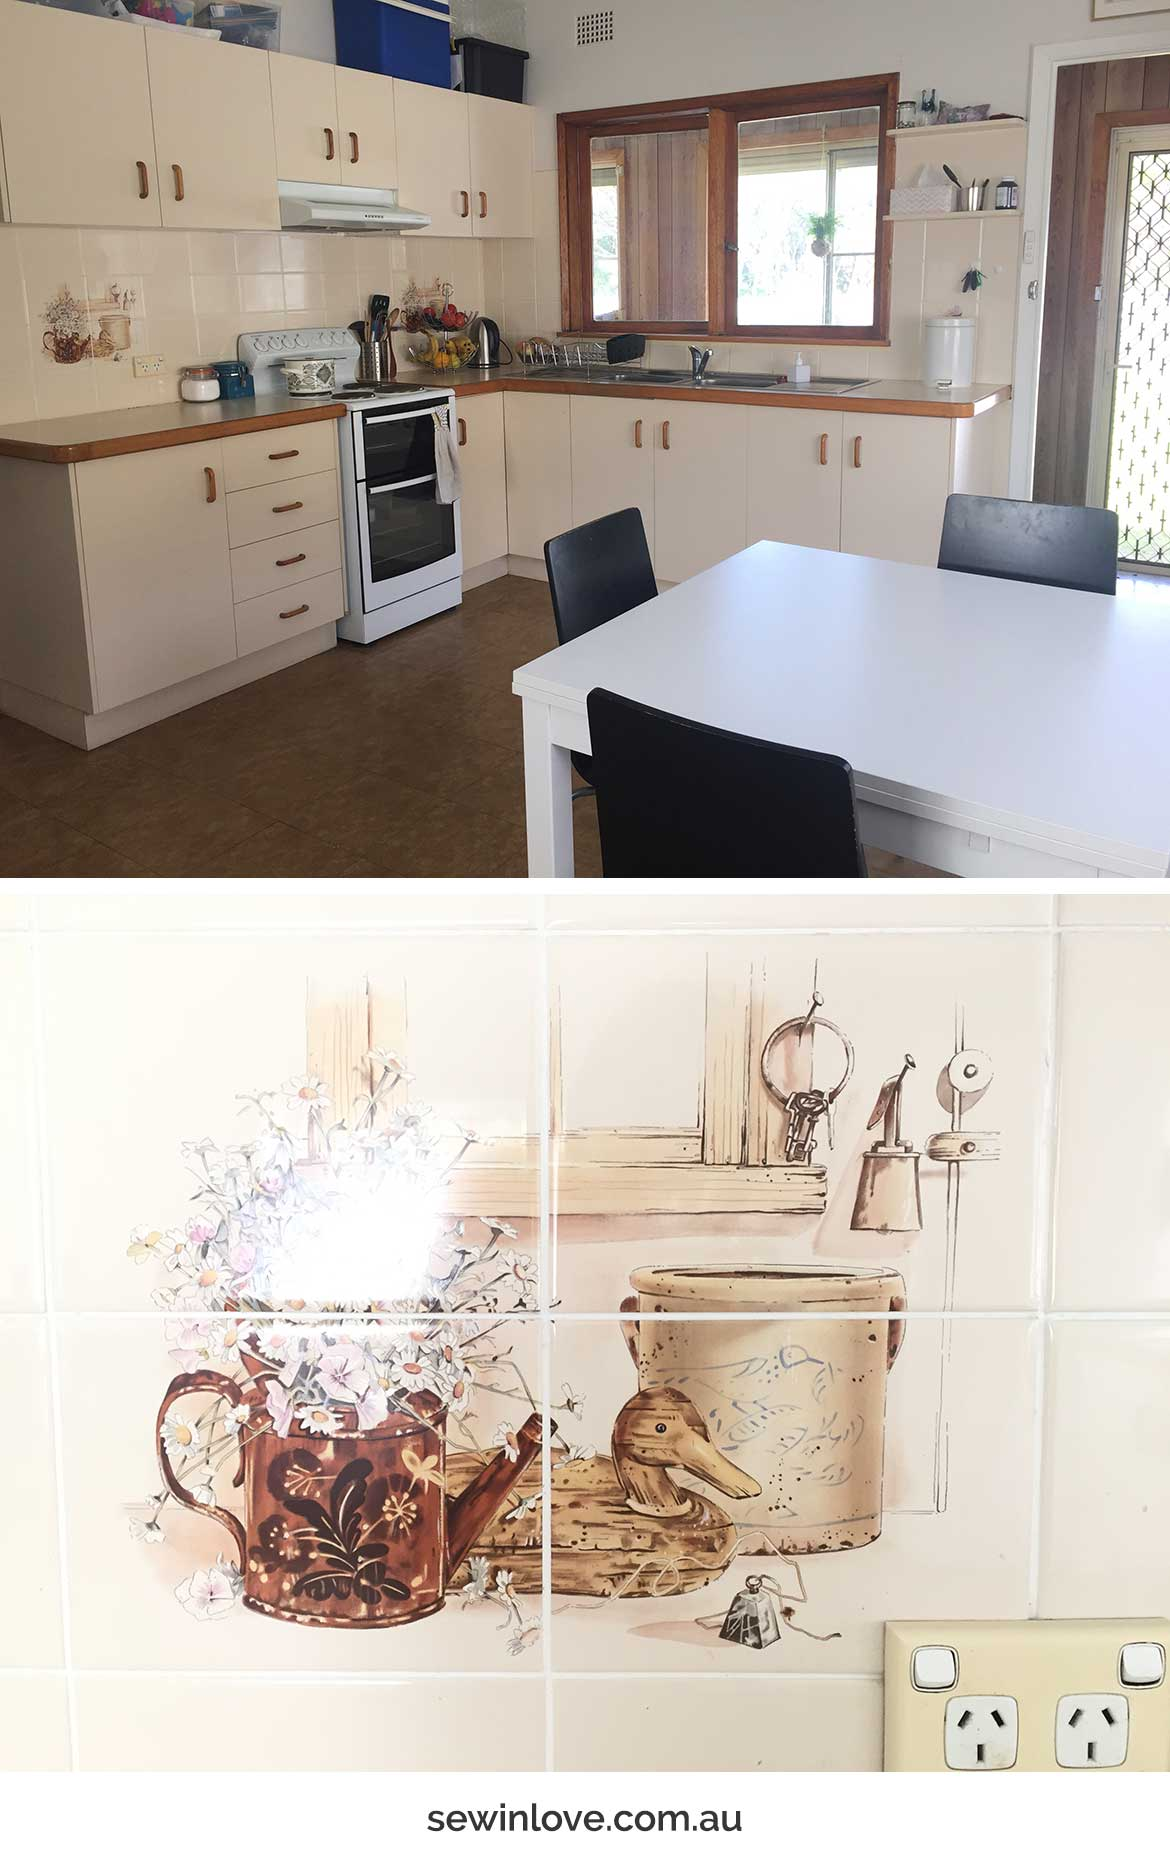 Take a look inside our 1950's beach cottage! The retro kitchen comes complete with ducks painted on the splashback tiles :)